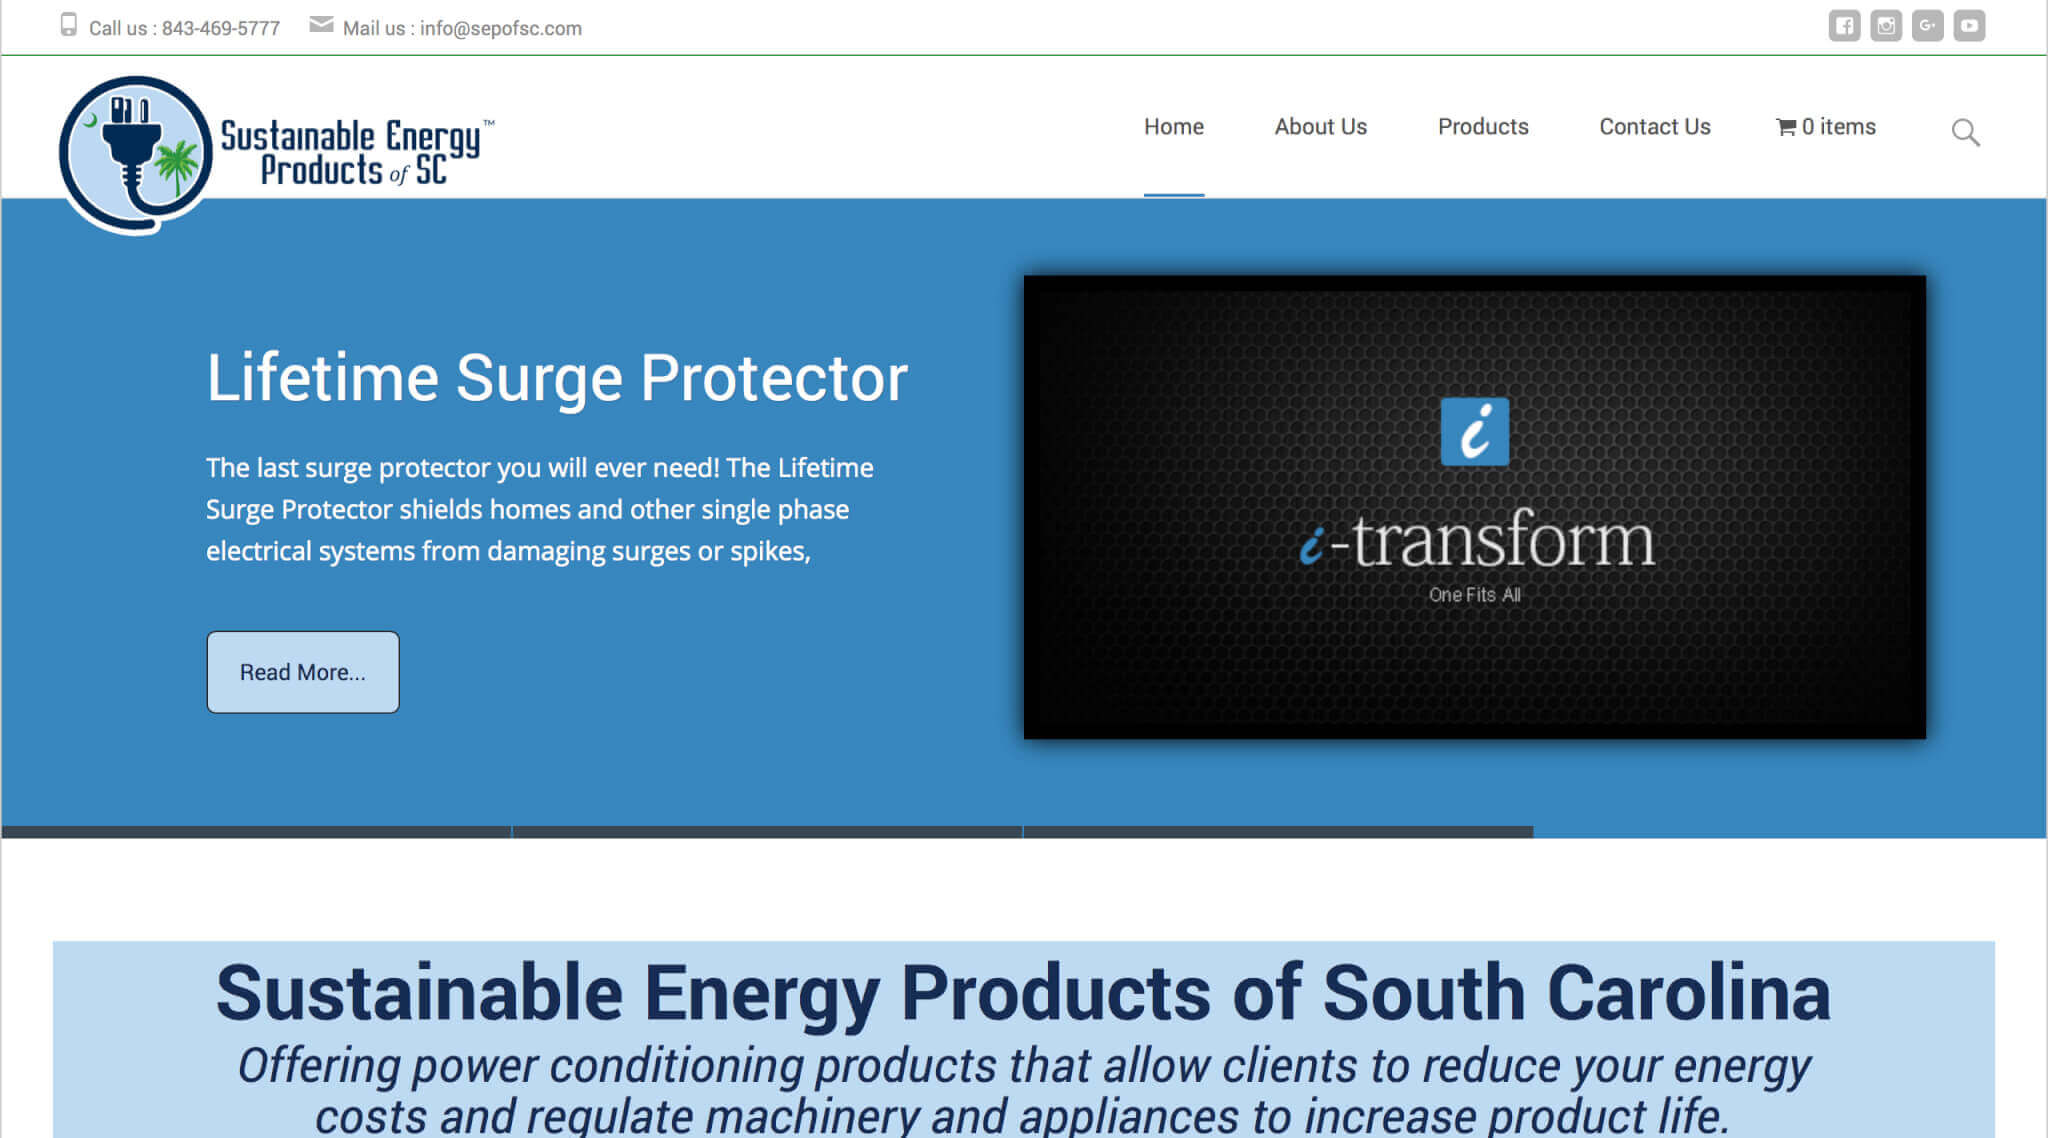 Sustainable Energy Products of SC